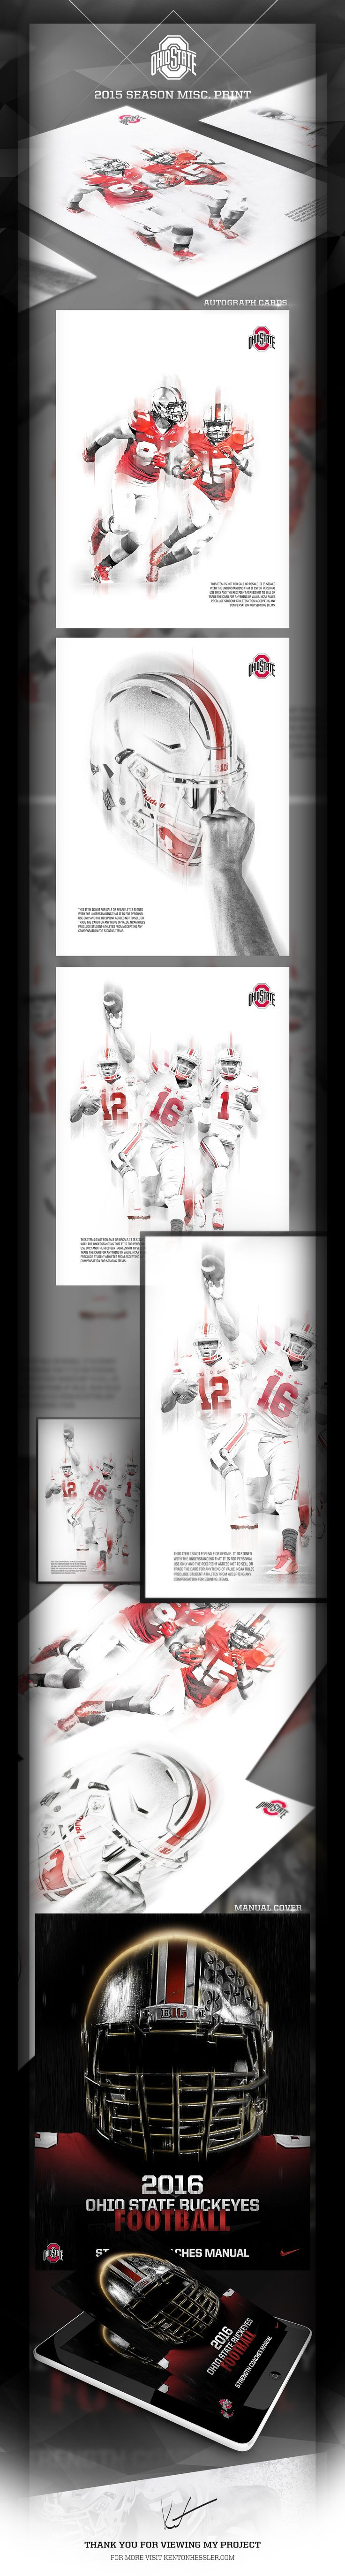 Ohio State Football Misc. Print // 2015 on Behance